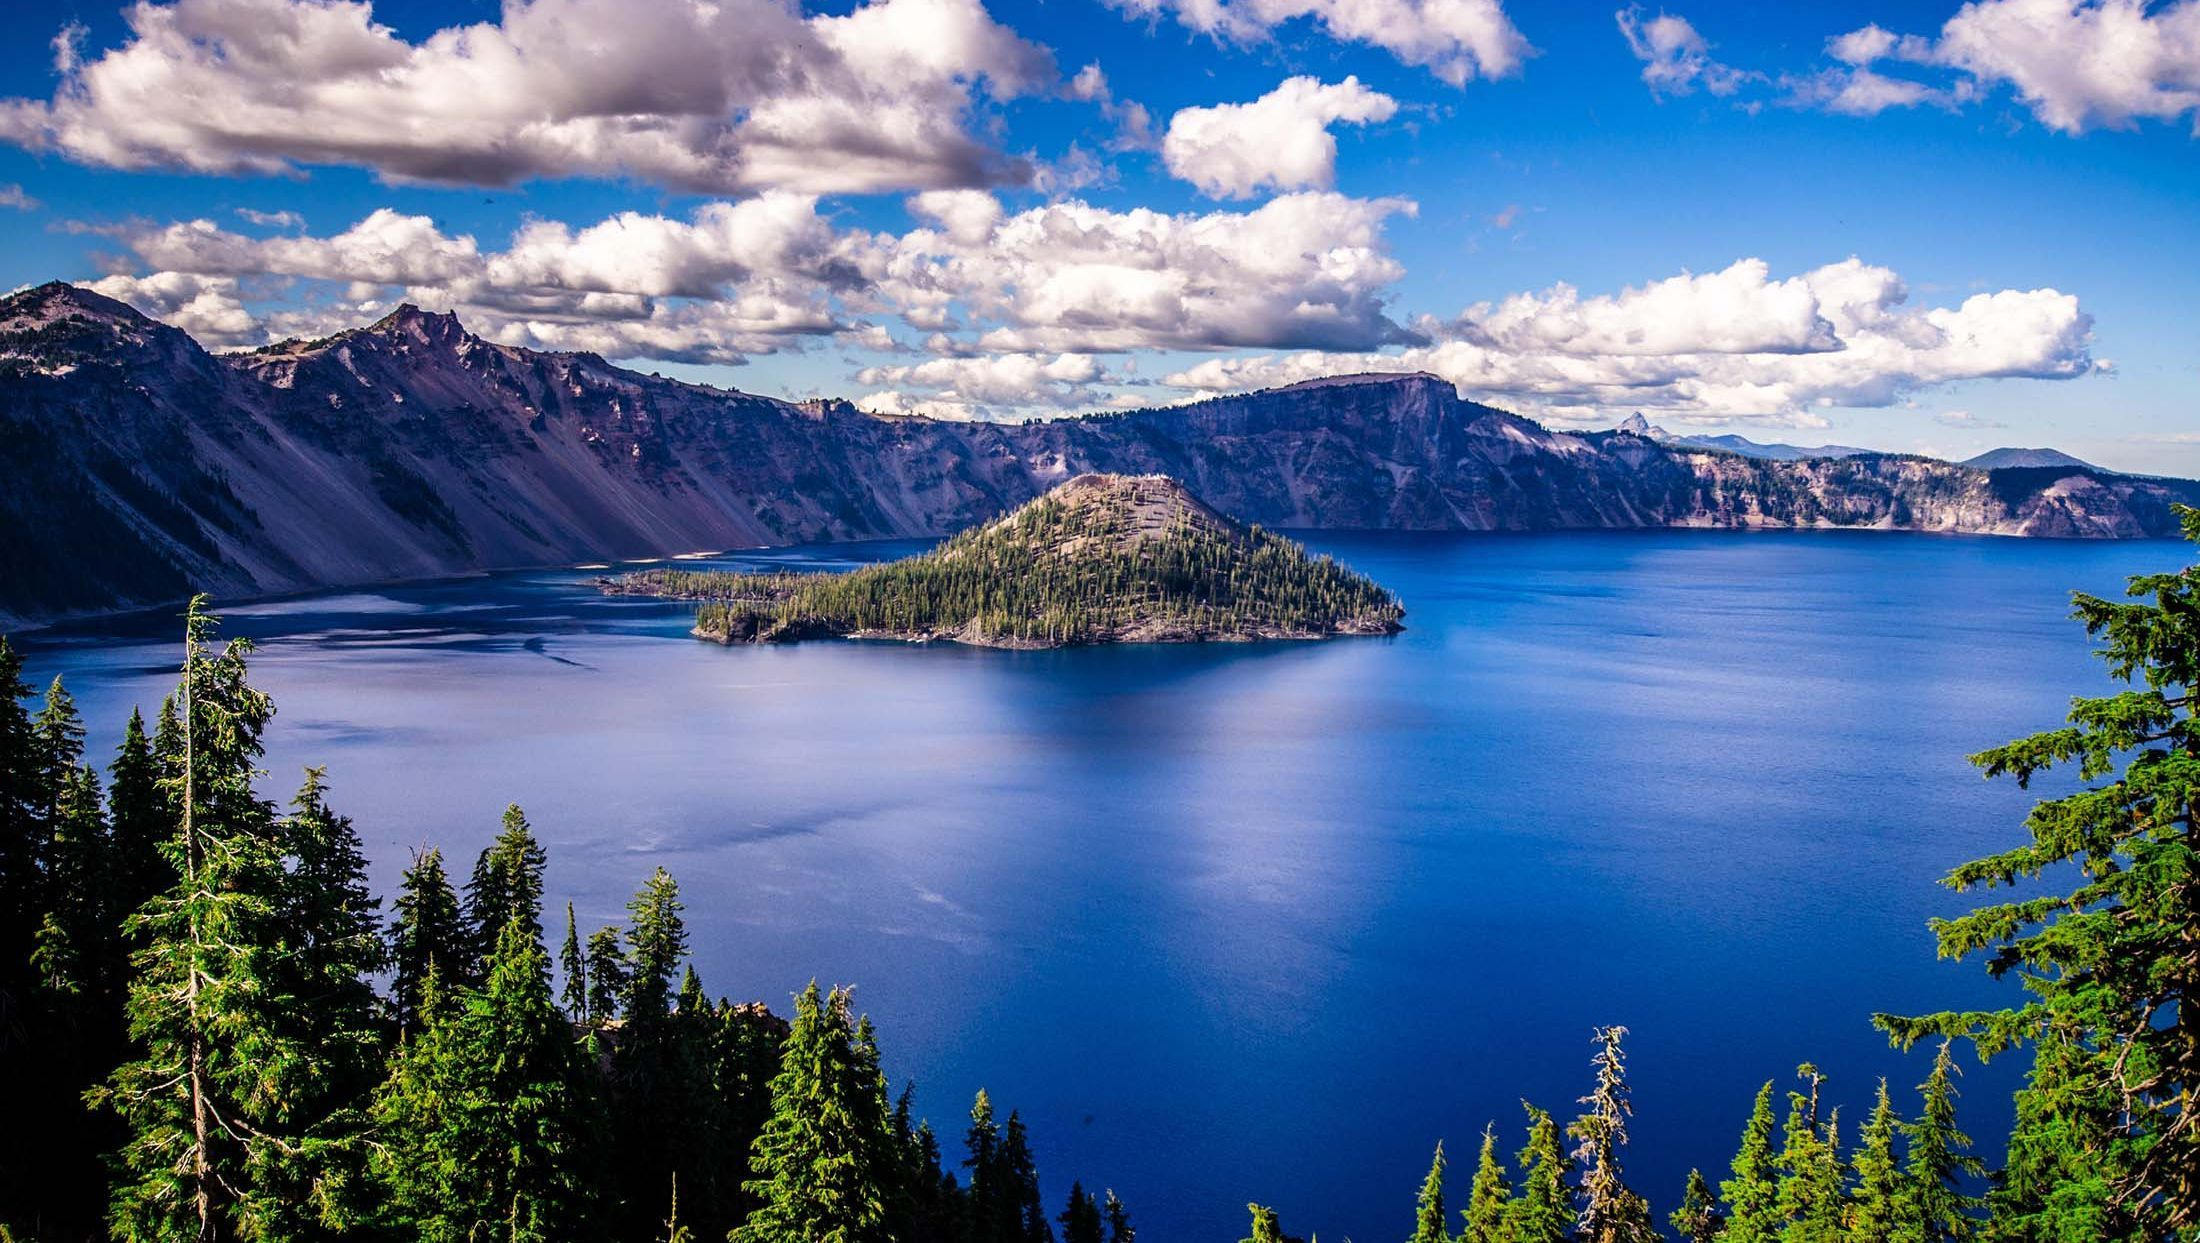 50 state road trip Things to do in each state for under